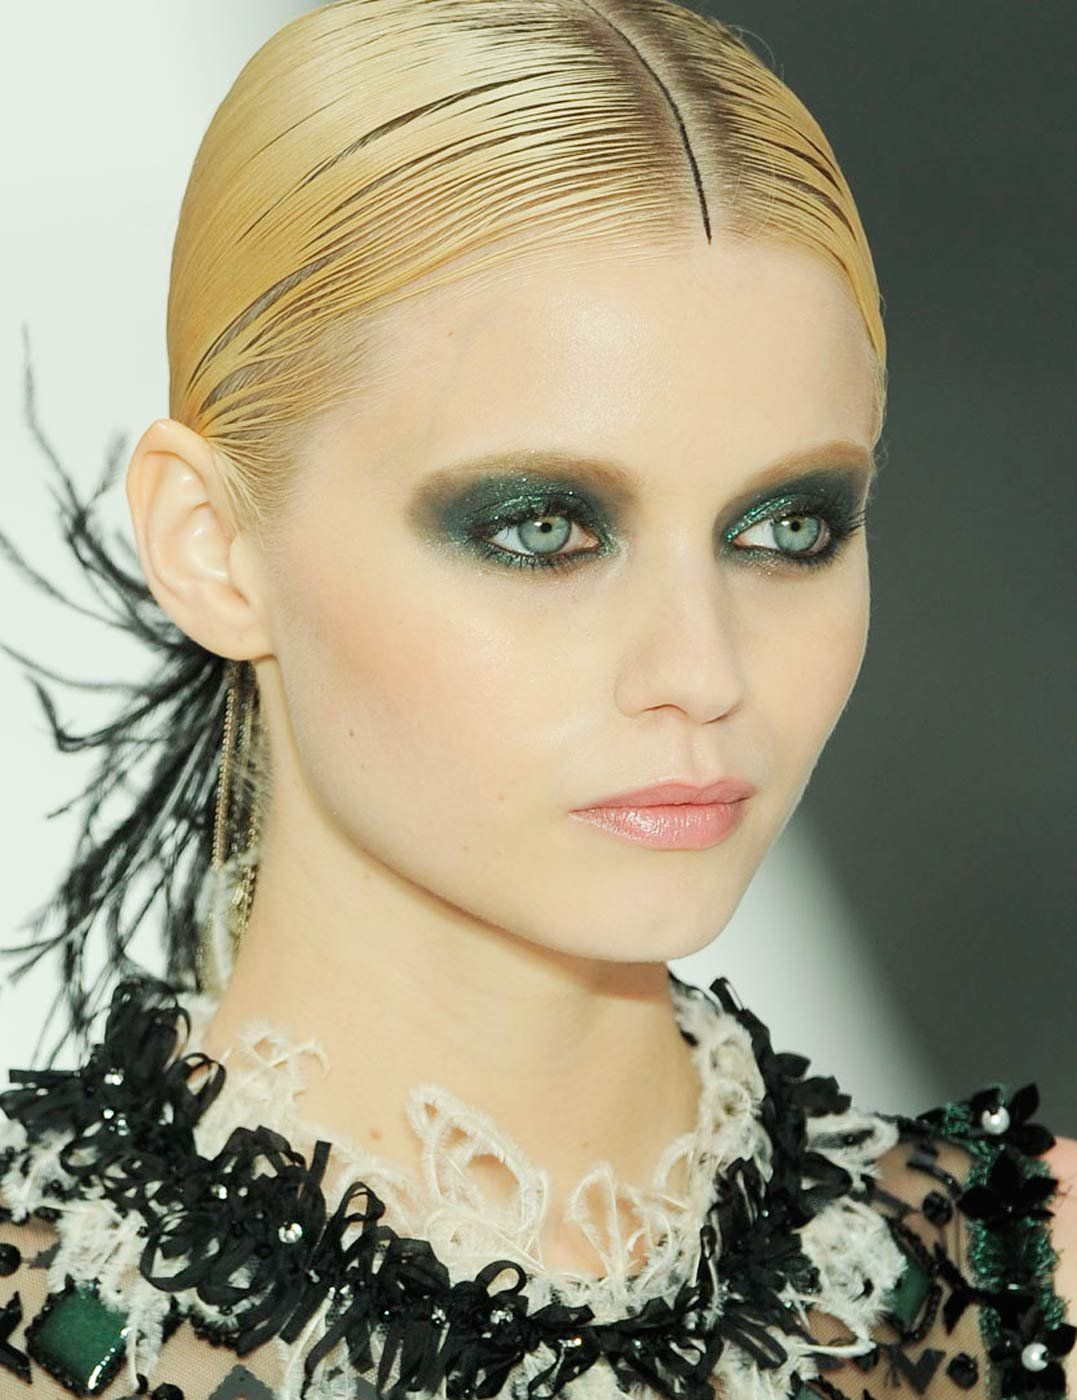 Chanel Best Makeup Looks Chanel makeup, Beauty tips